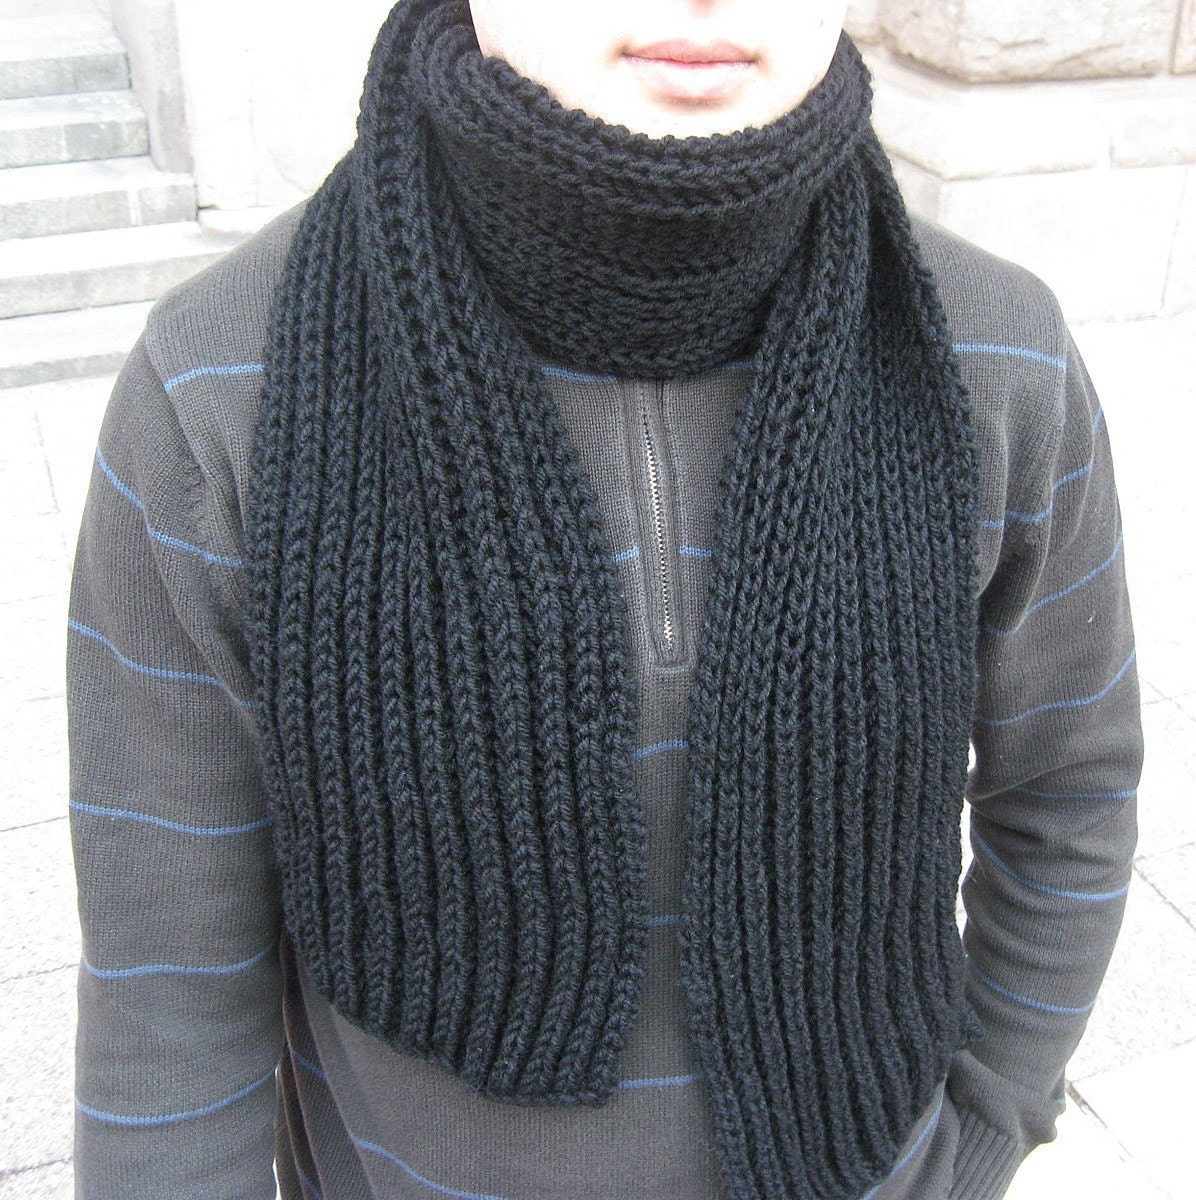 Free Knitting Patterns For Mens Scarves : A young Manly Patterns Knitted Scarves For Men Free